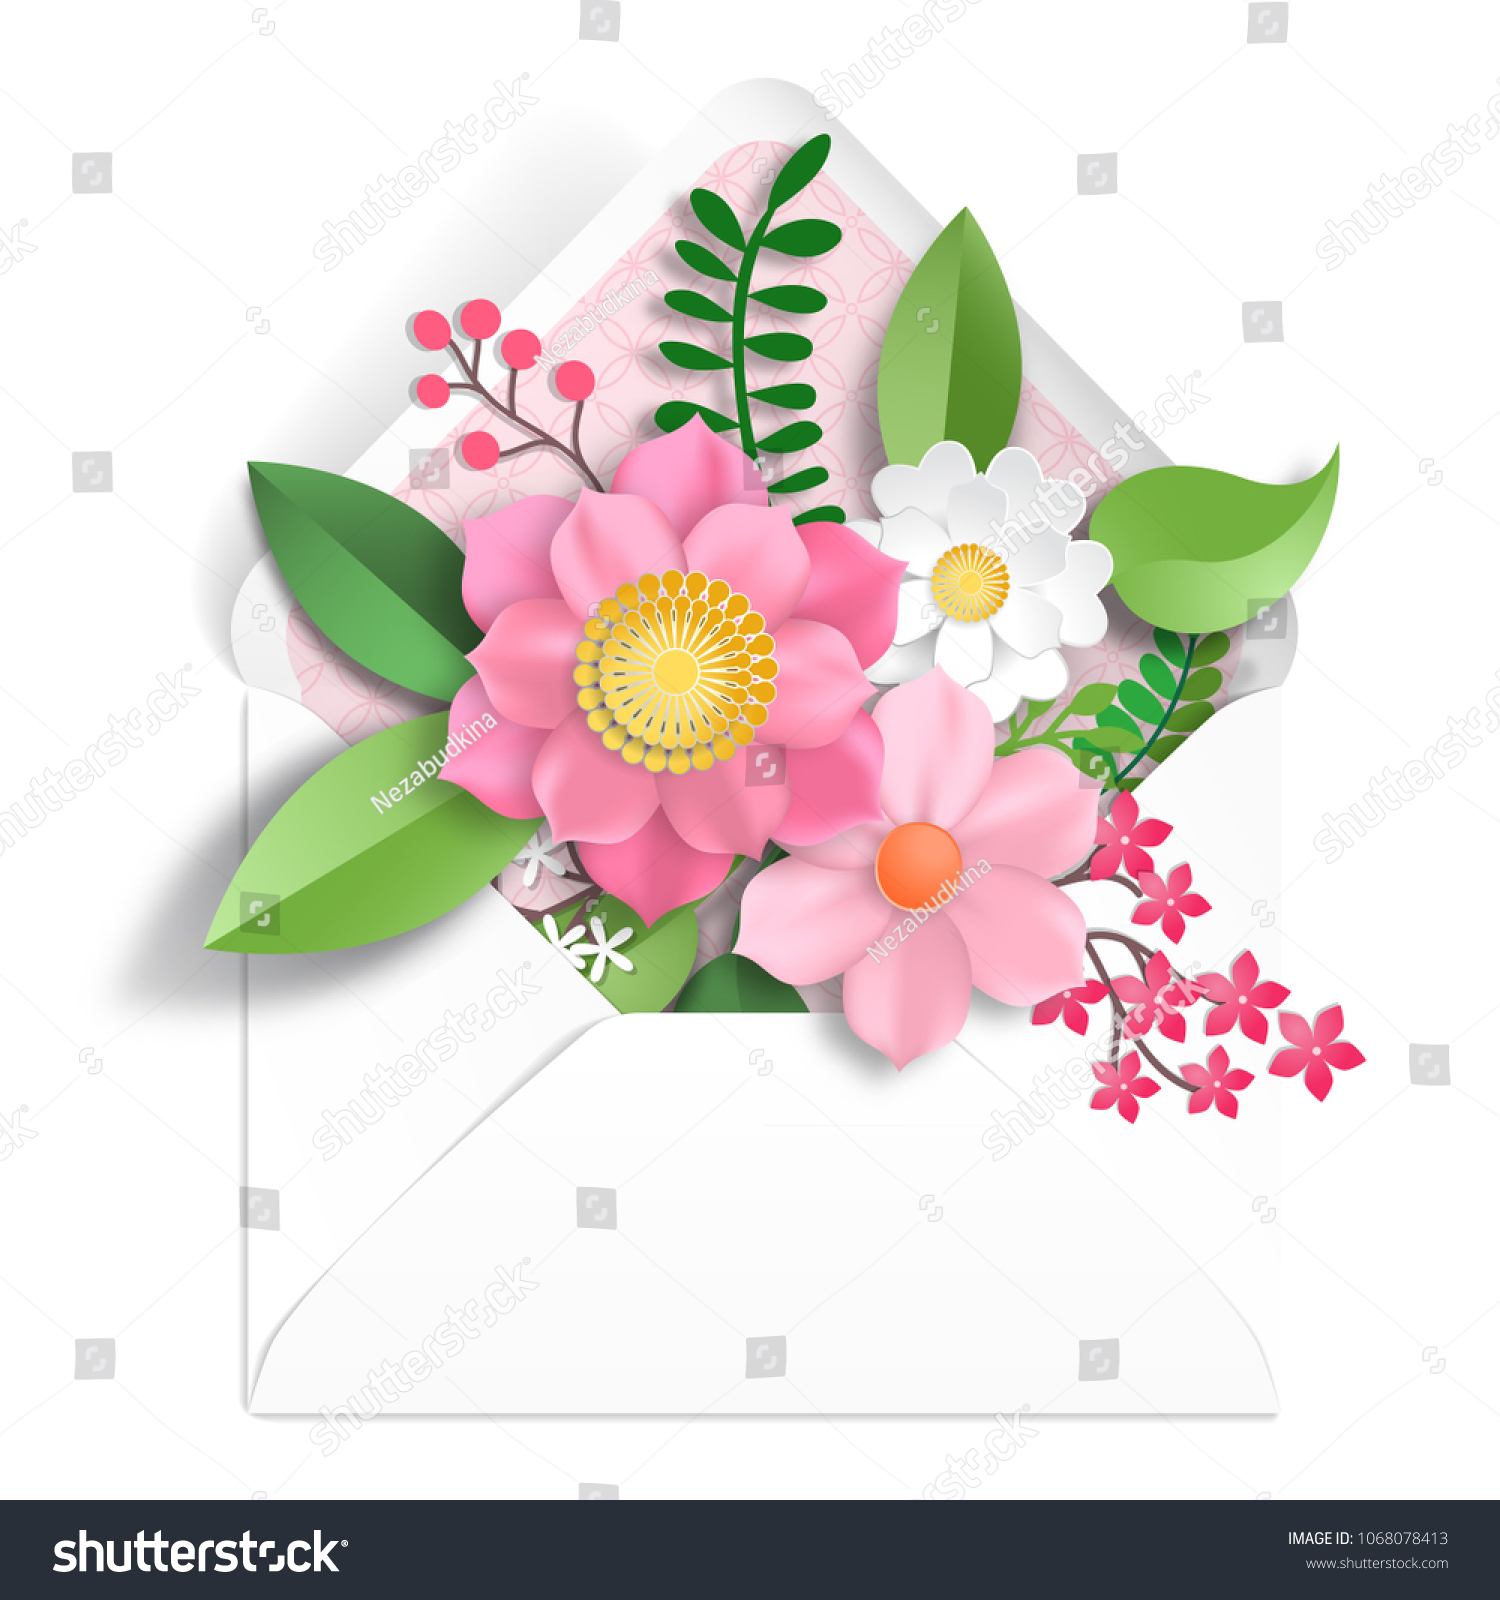 Envelope 3 D Paper Flowers Paper Cut Stock Illustration 1068078413